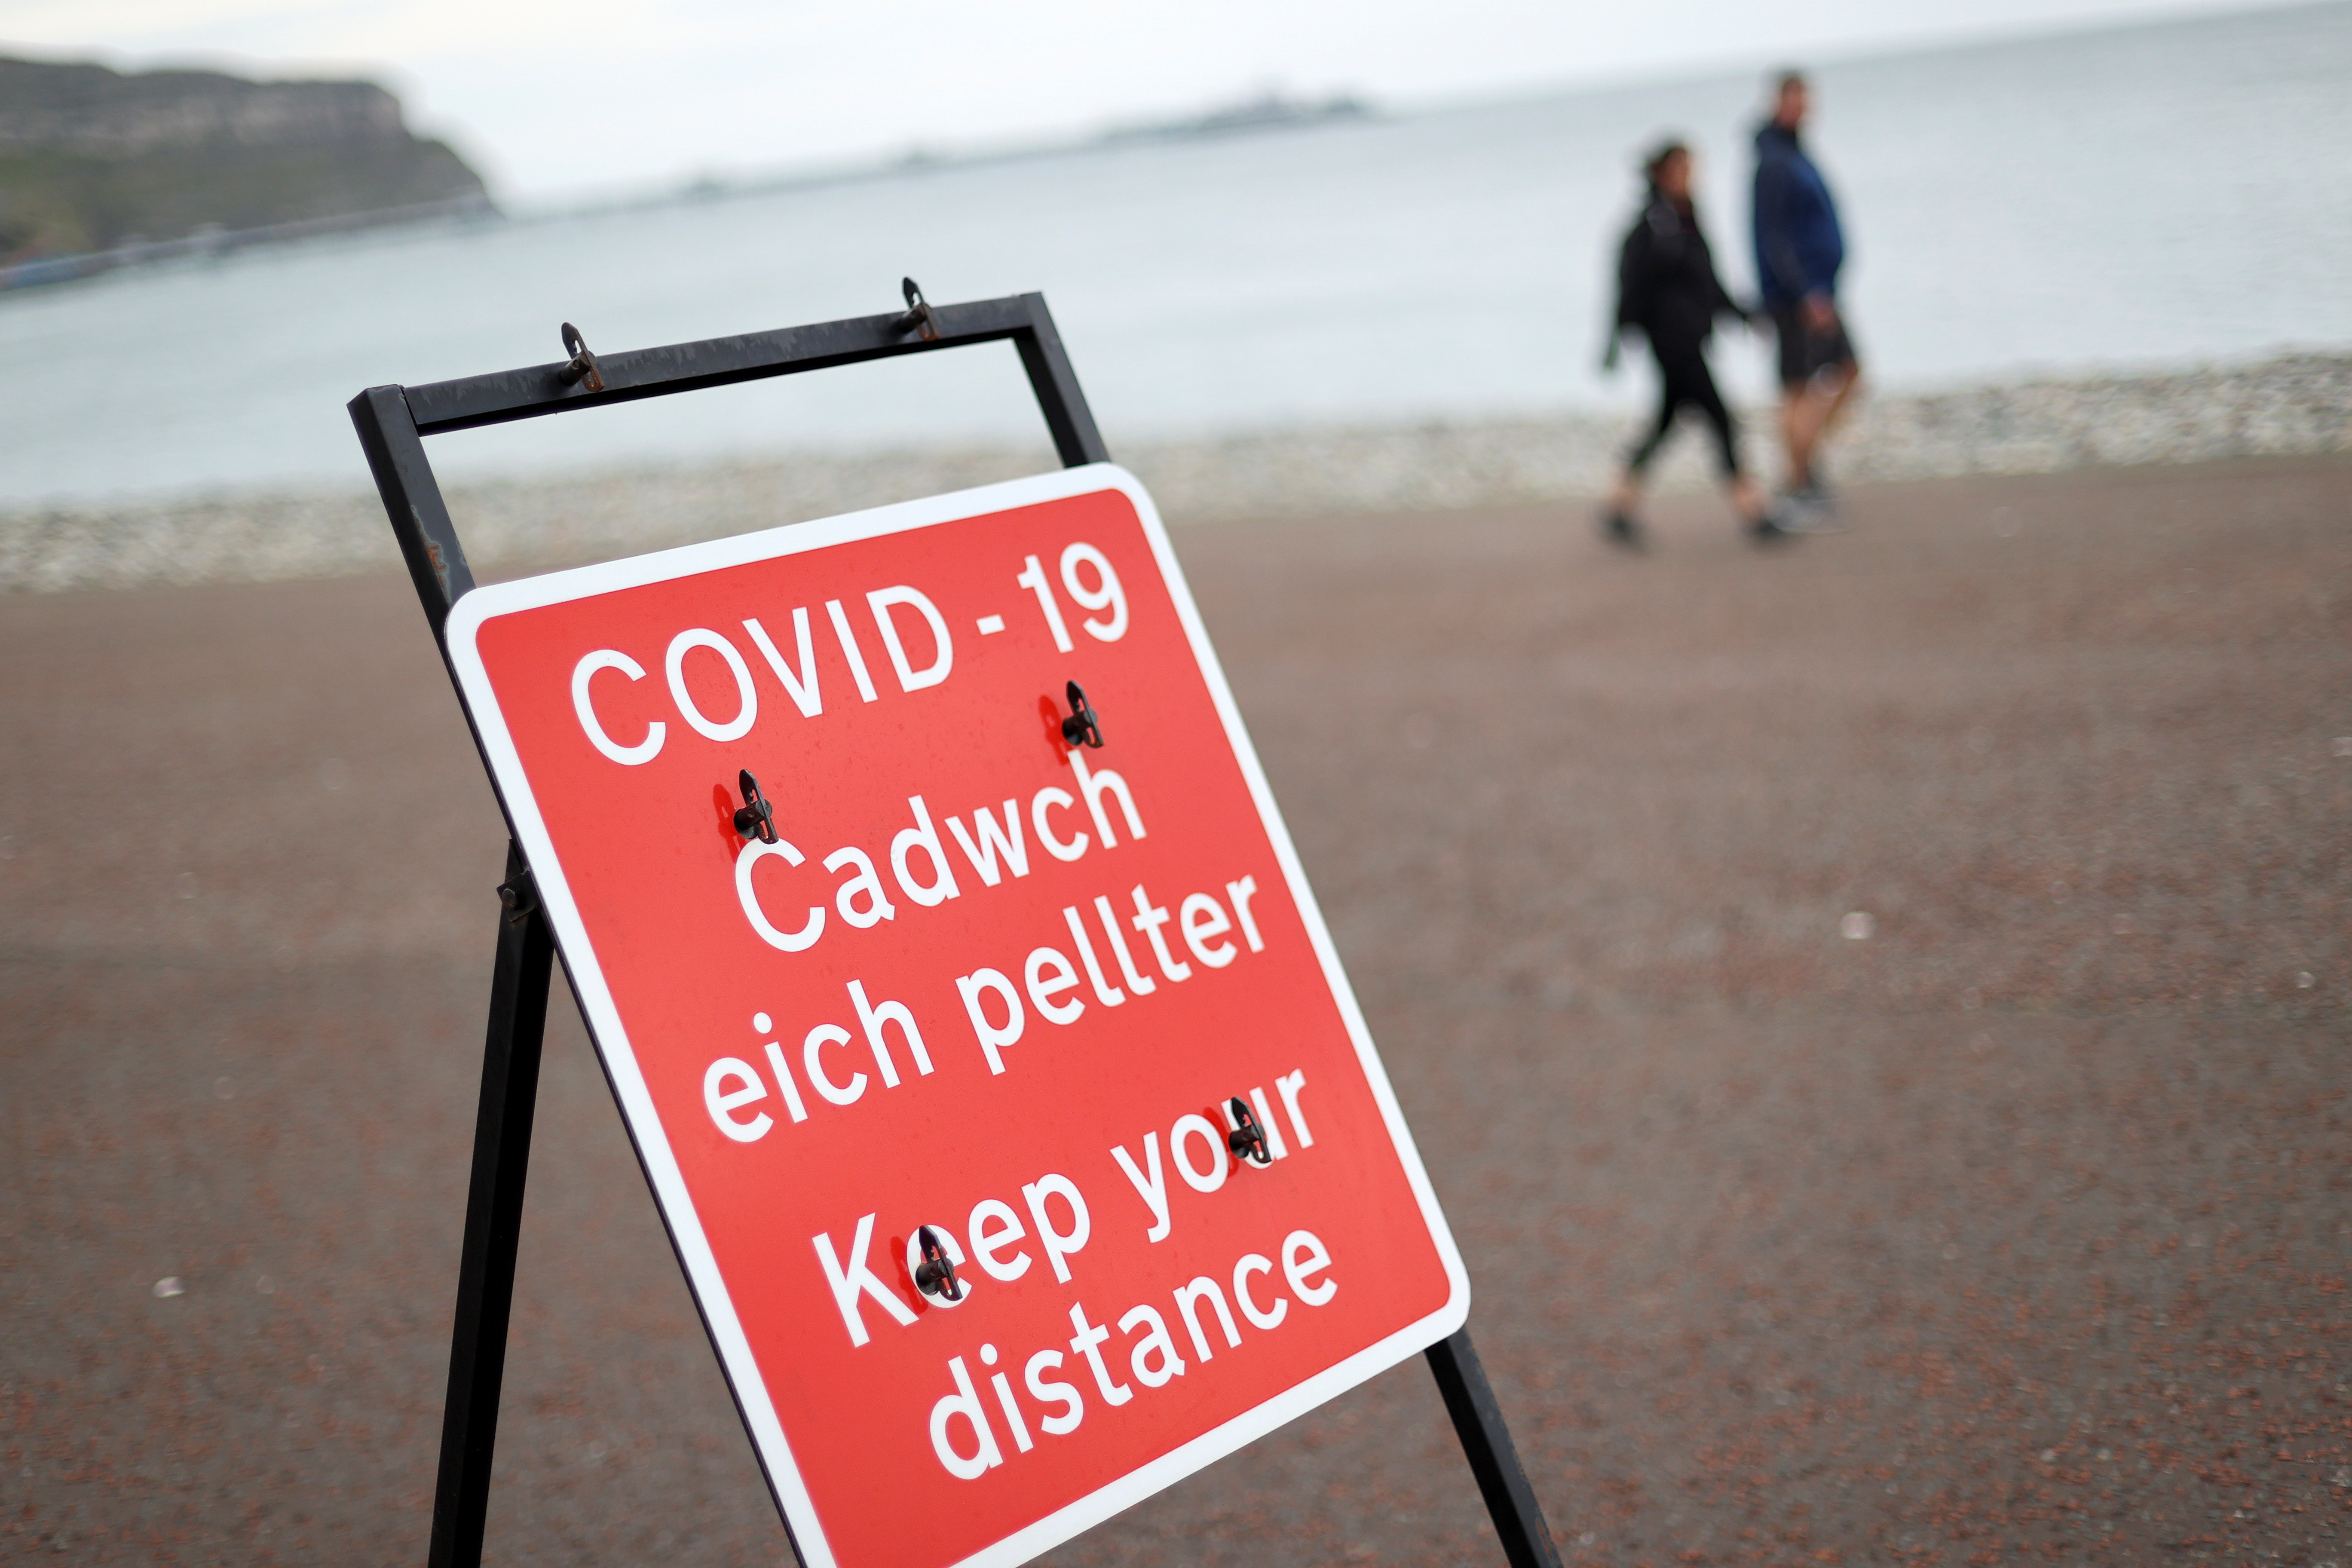 A social distancing sign is seen as people walk in the background, as the Welsh Government is set to impose stricter lockdown measures to try to curb the spread of the coronavirus disease (COVID-19), in Llandudno, Britain October 19, 2020. REUTERS/Carl Recine - RC2OLJ9T9107